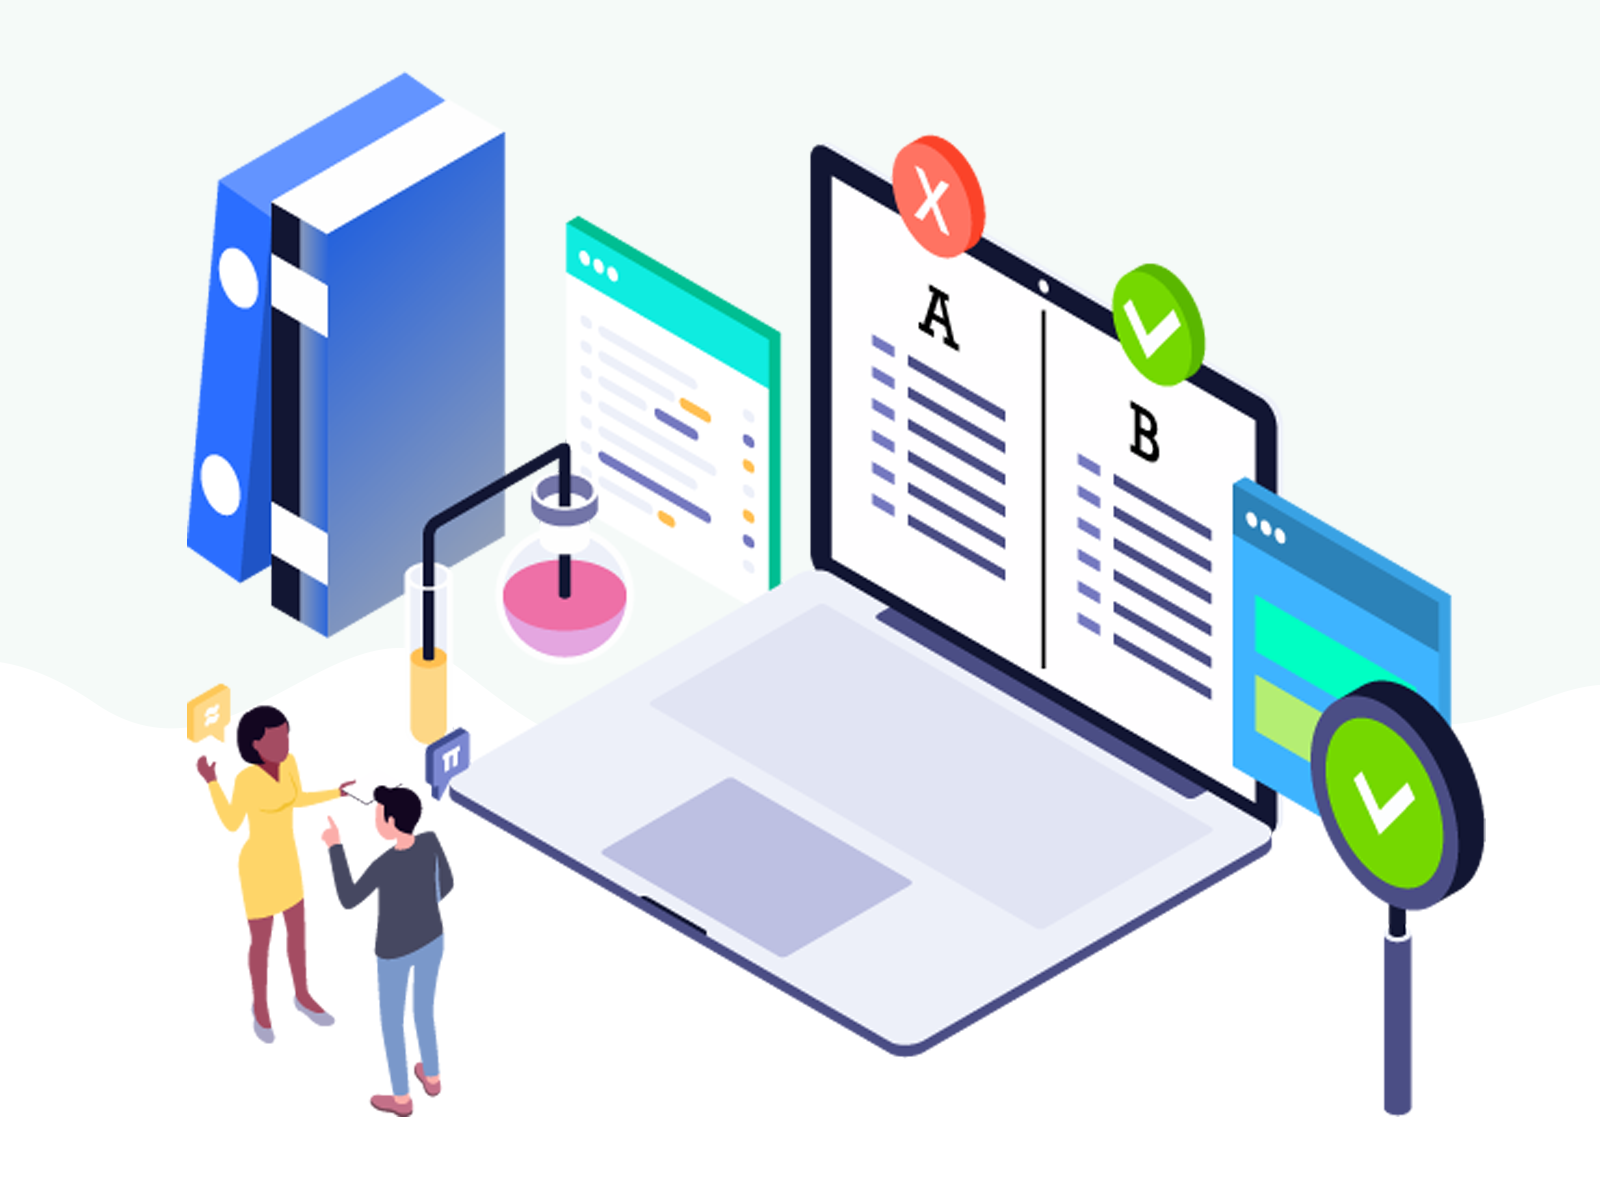 Aritic-includes-real-AB-Testing-power that stand tall in terms of testing everything of your campaign from call to action (cta) button to copywriting to fonts to colors to ensure suitablity across all channels